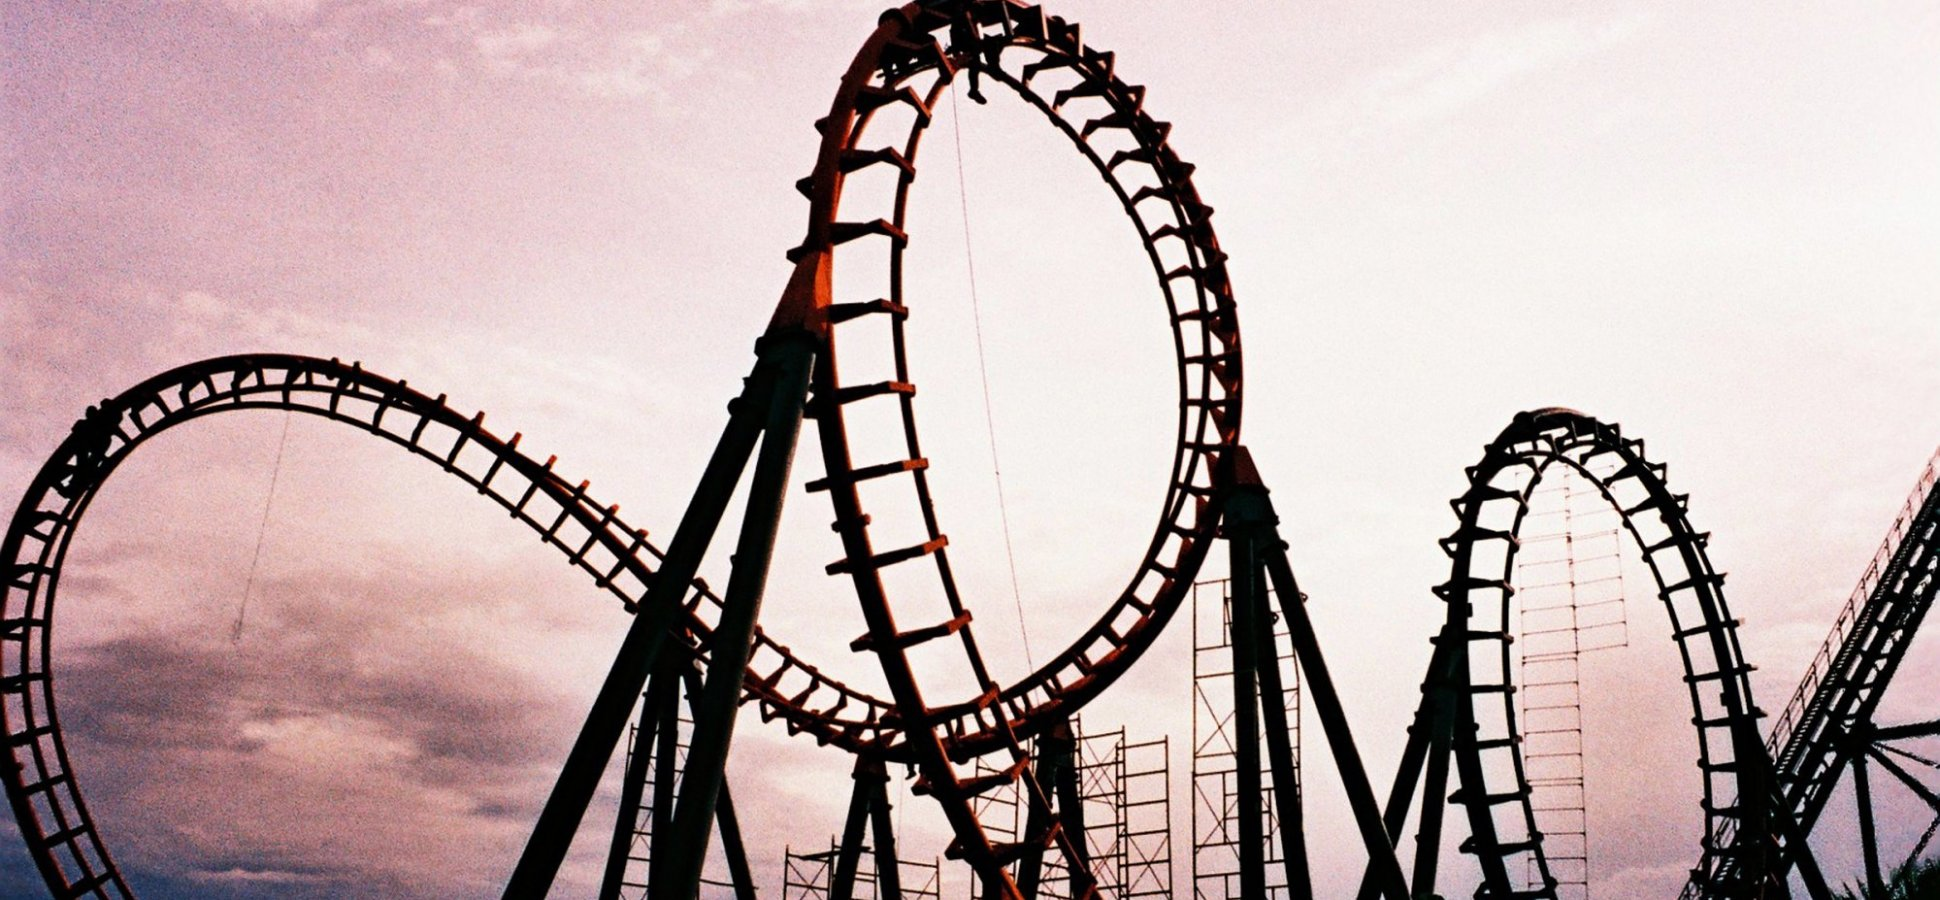 Try this... - Here's the good news- you can get off of the emotional roller coaster. First, you must decide that an inconsistent emotional state is unhealthy FOR YOU. It does not serve you well. When your emotions are too high or extreme, your logic is low. A balance of logic and emotion is required to make good decisions.